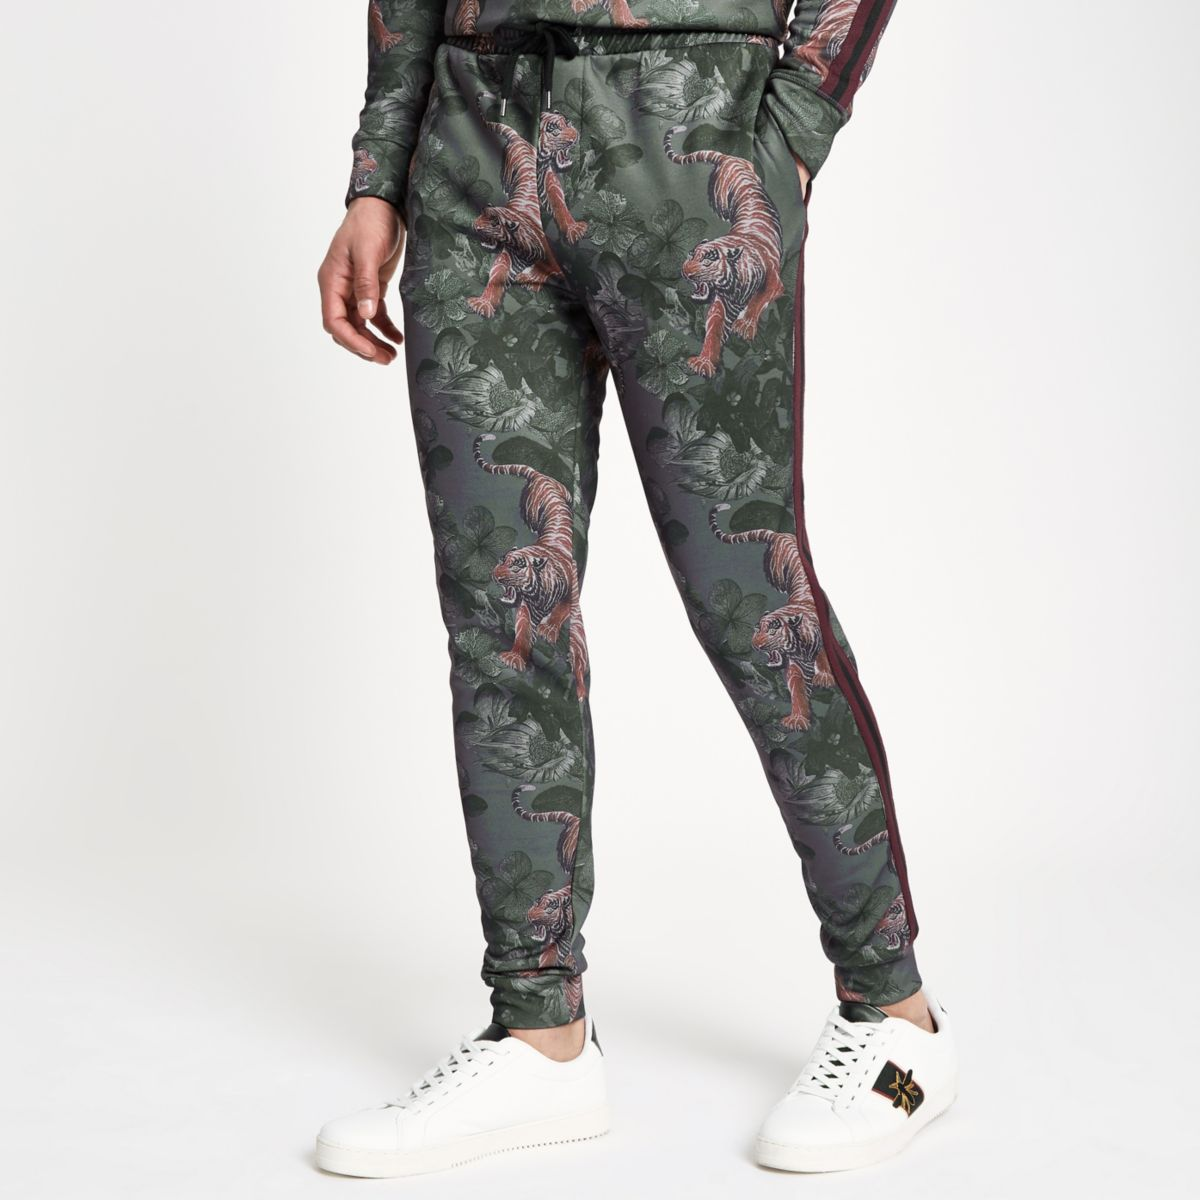 Mens Green slim fit tiger print joggers River Island Many Kinds Of Eastbay Cheap Online Clearance Online Fake Free Shipping Visa Payment Prices Cheap Price hjsJl6V